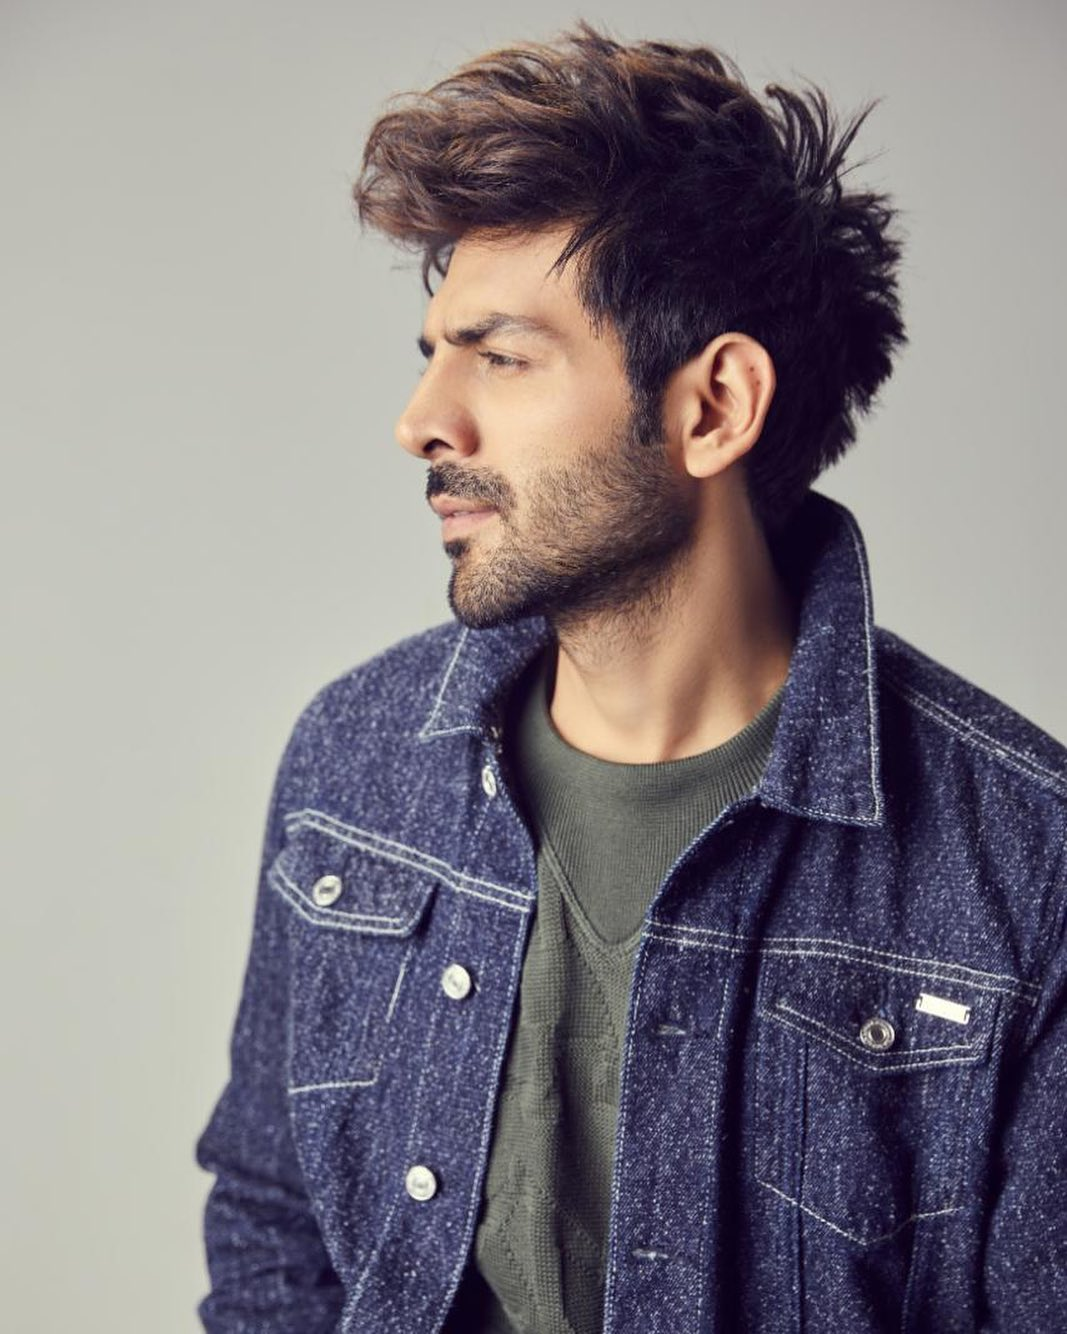 Kartik Aryan Top Model India - posing in Denim and Green Tshirt